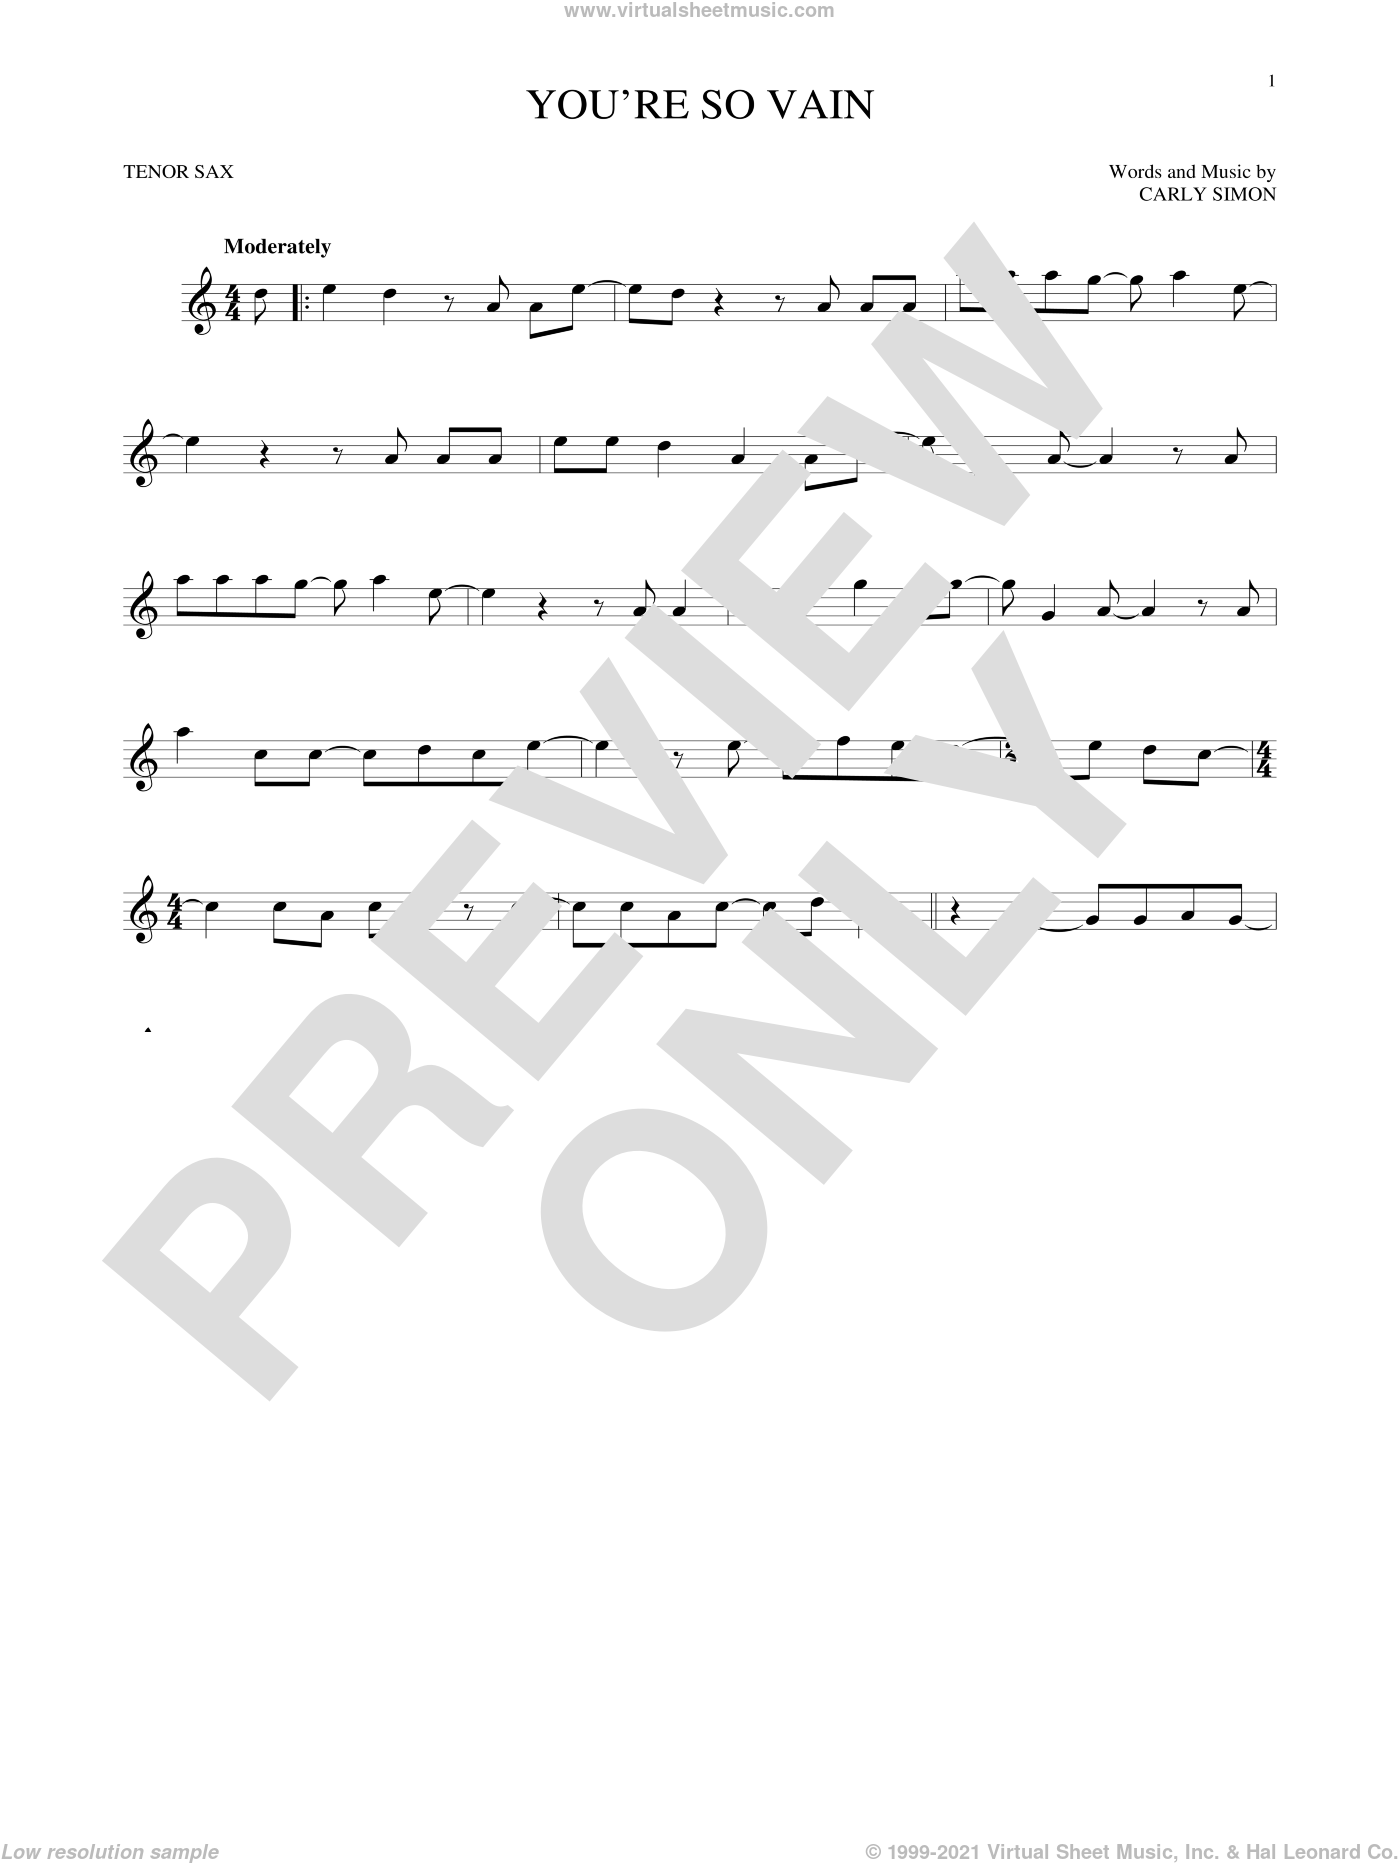 You're So Vain sheet music for tenor saxophone solo by Carly Simon, intermediate skill level